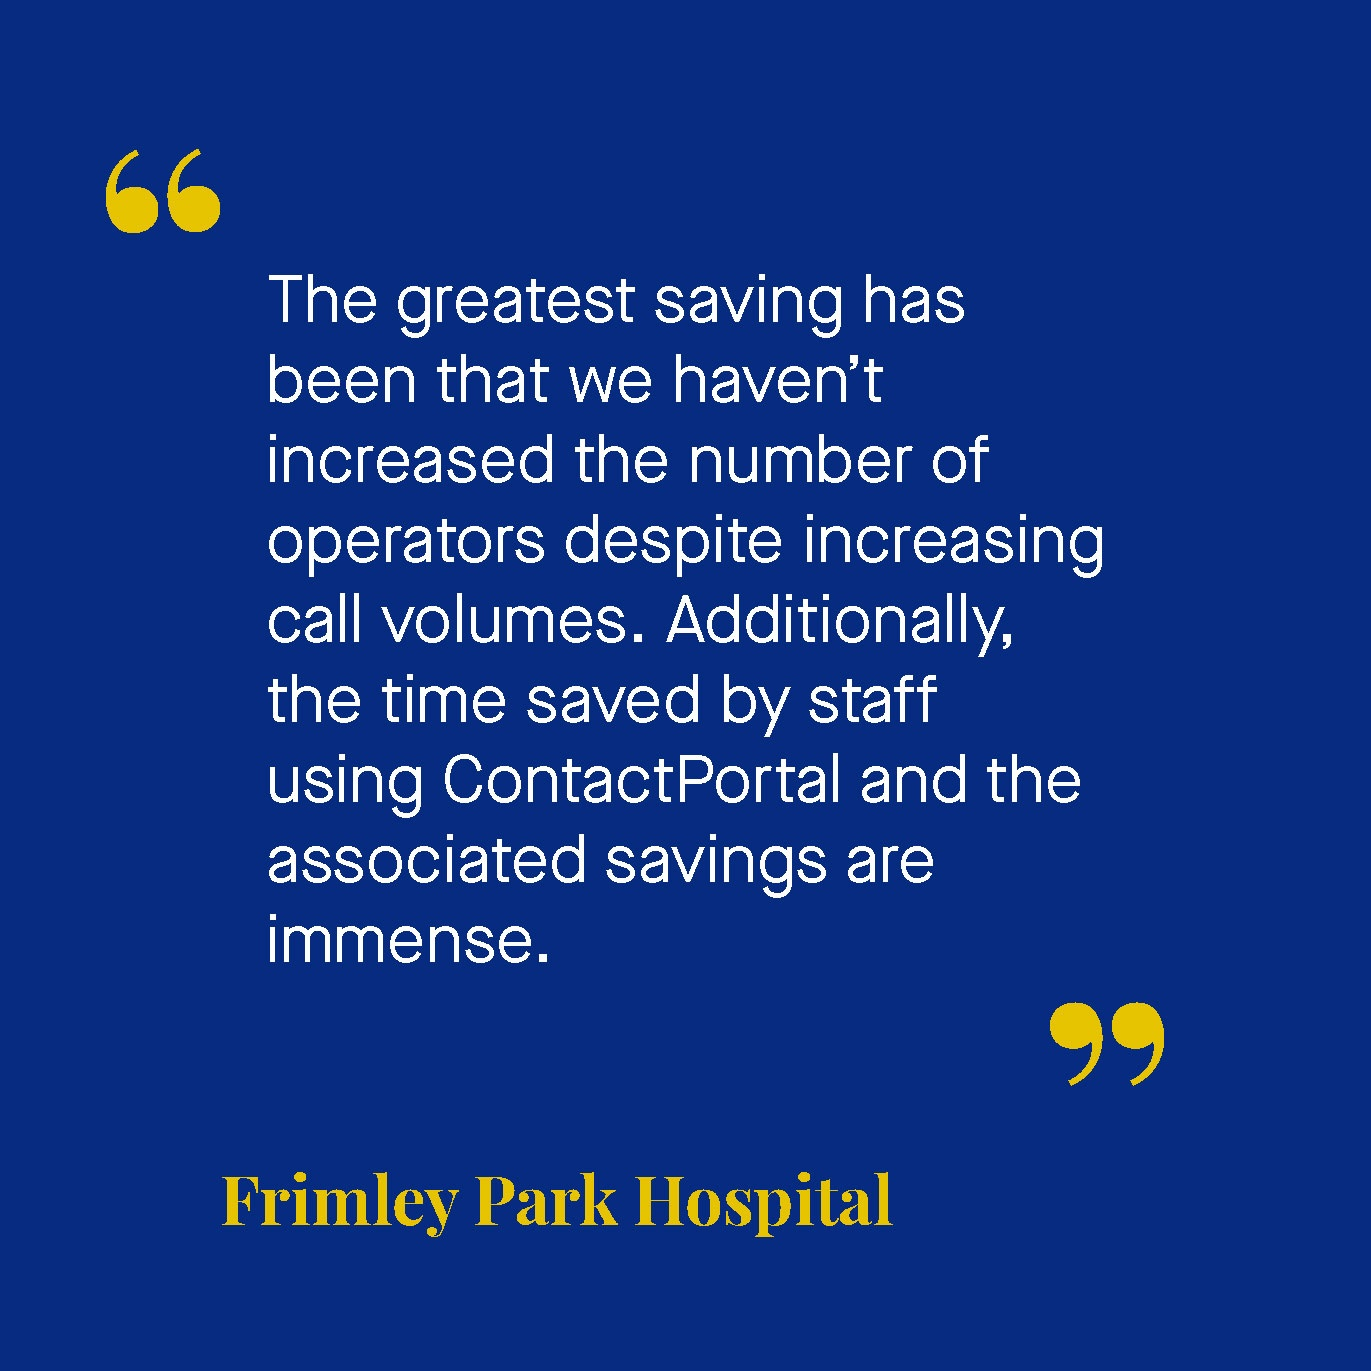 The greatest saving has been that we haven't increased the number of operators despite increasing call volumes